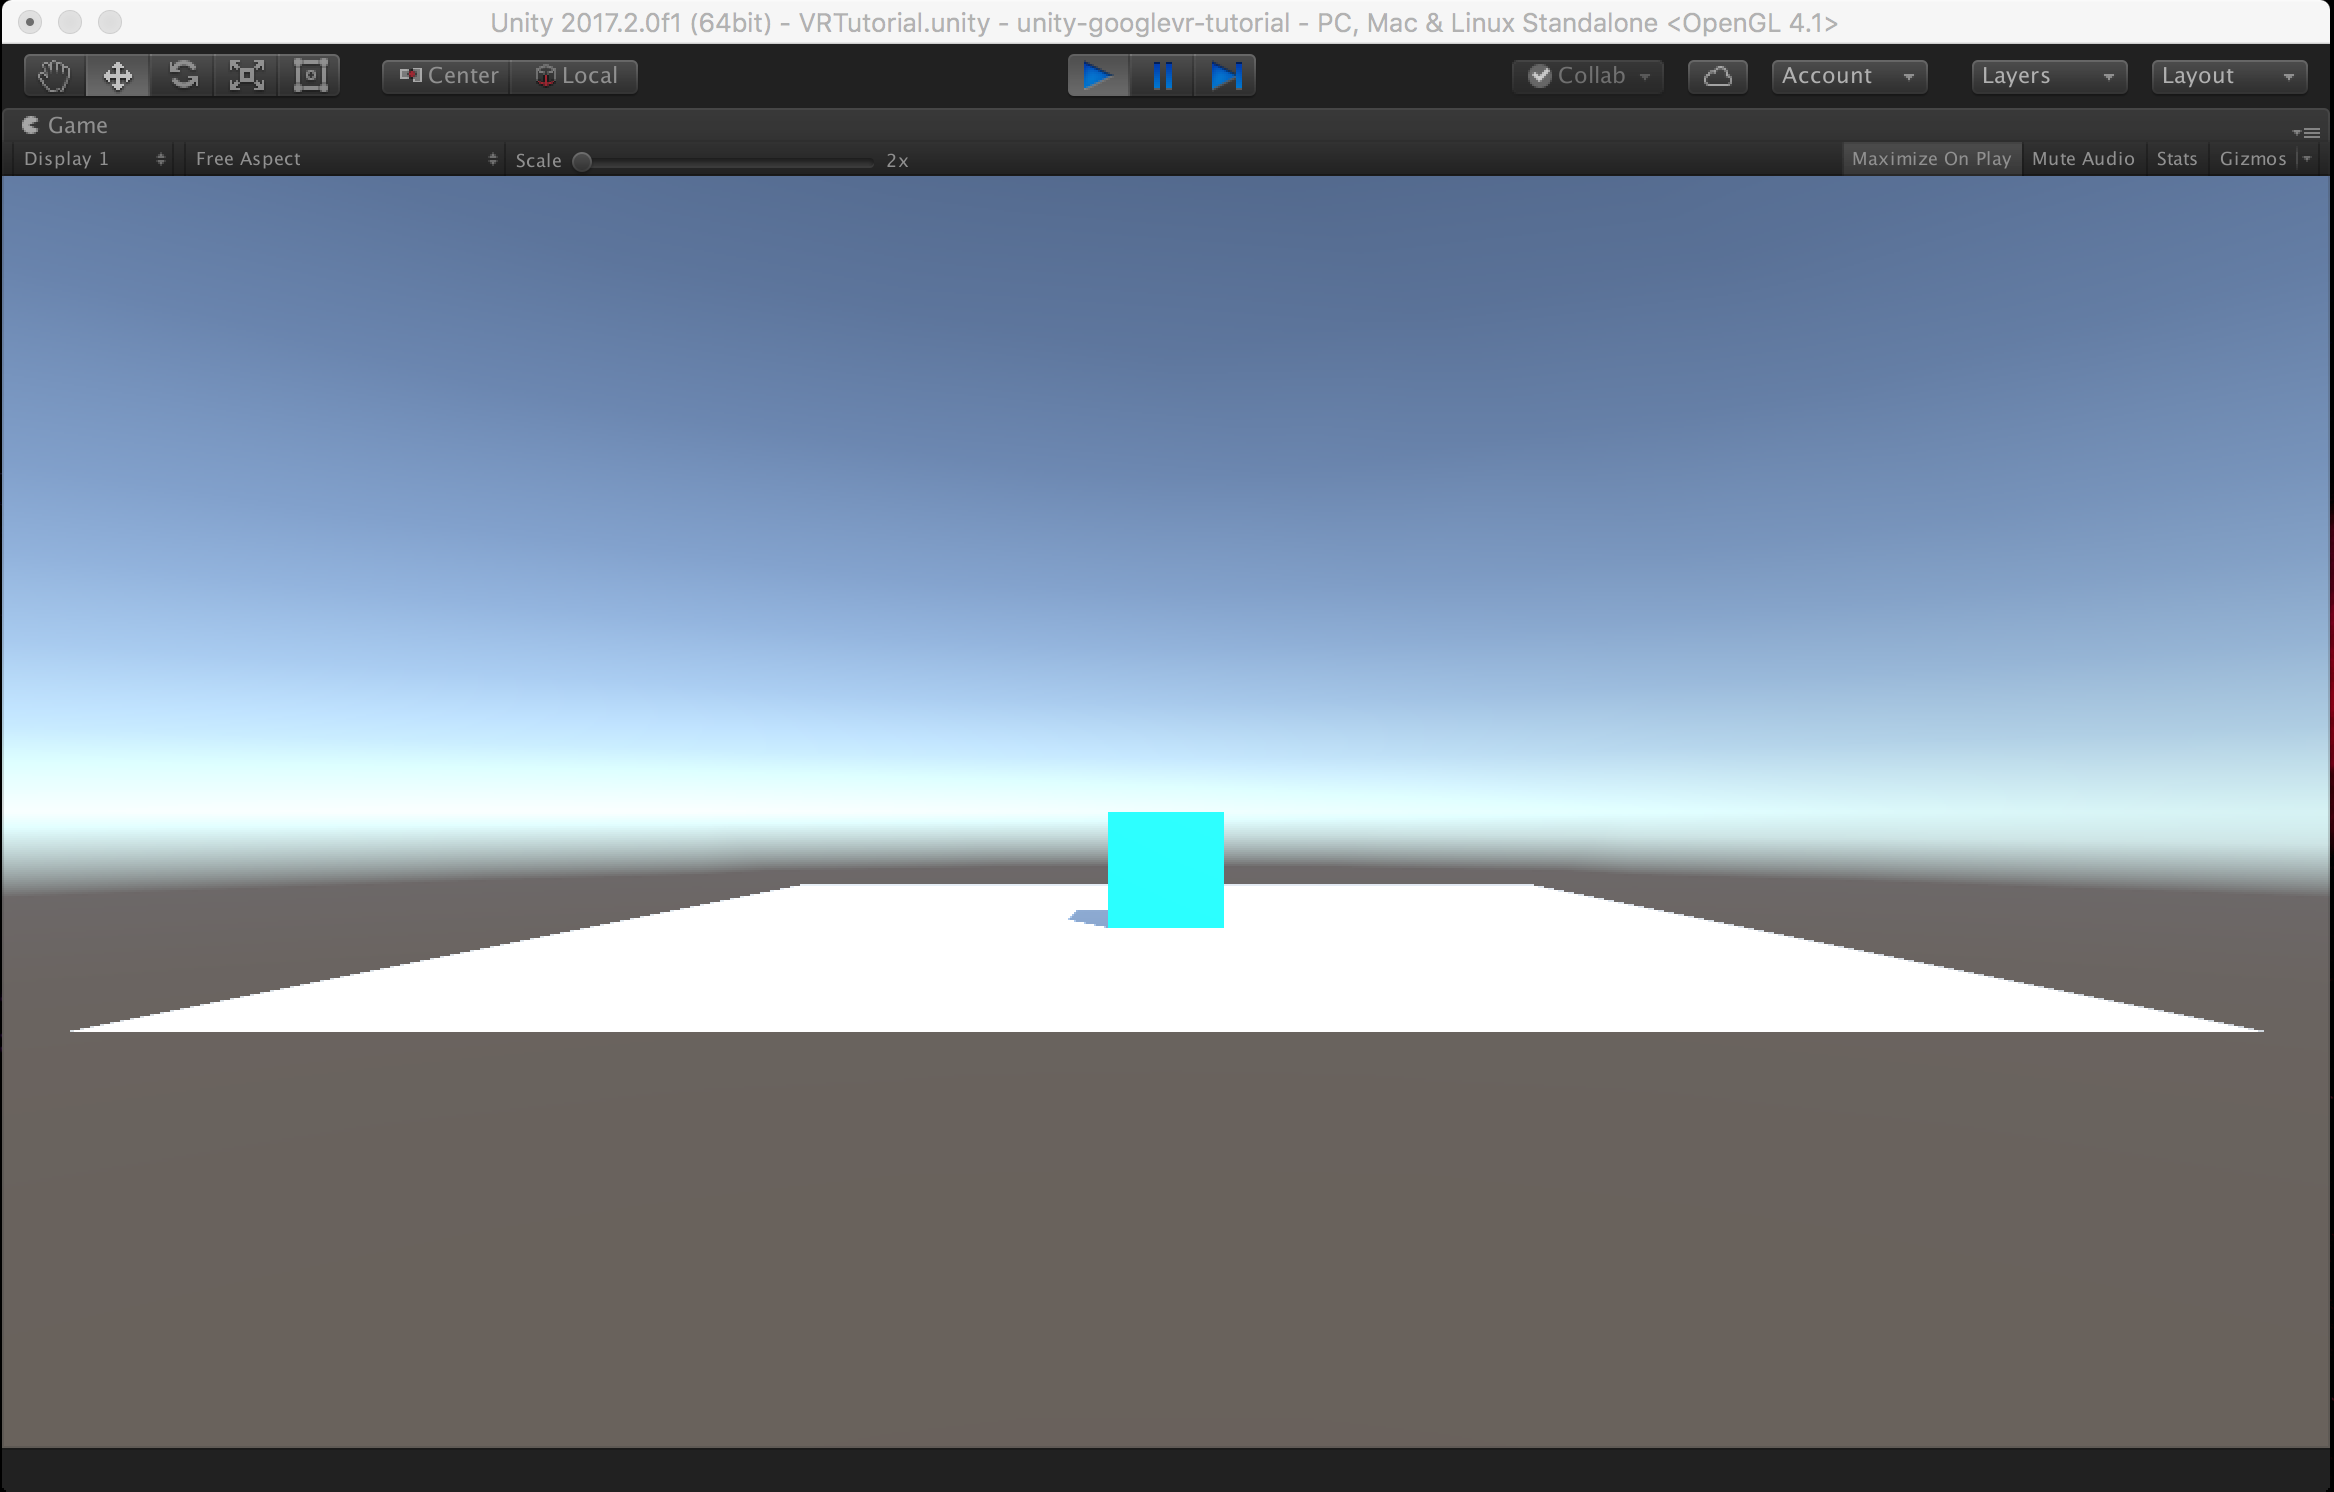 Start building your first Virtual Reality application with